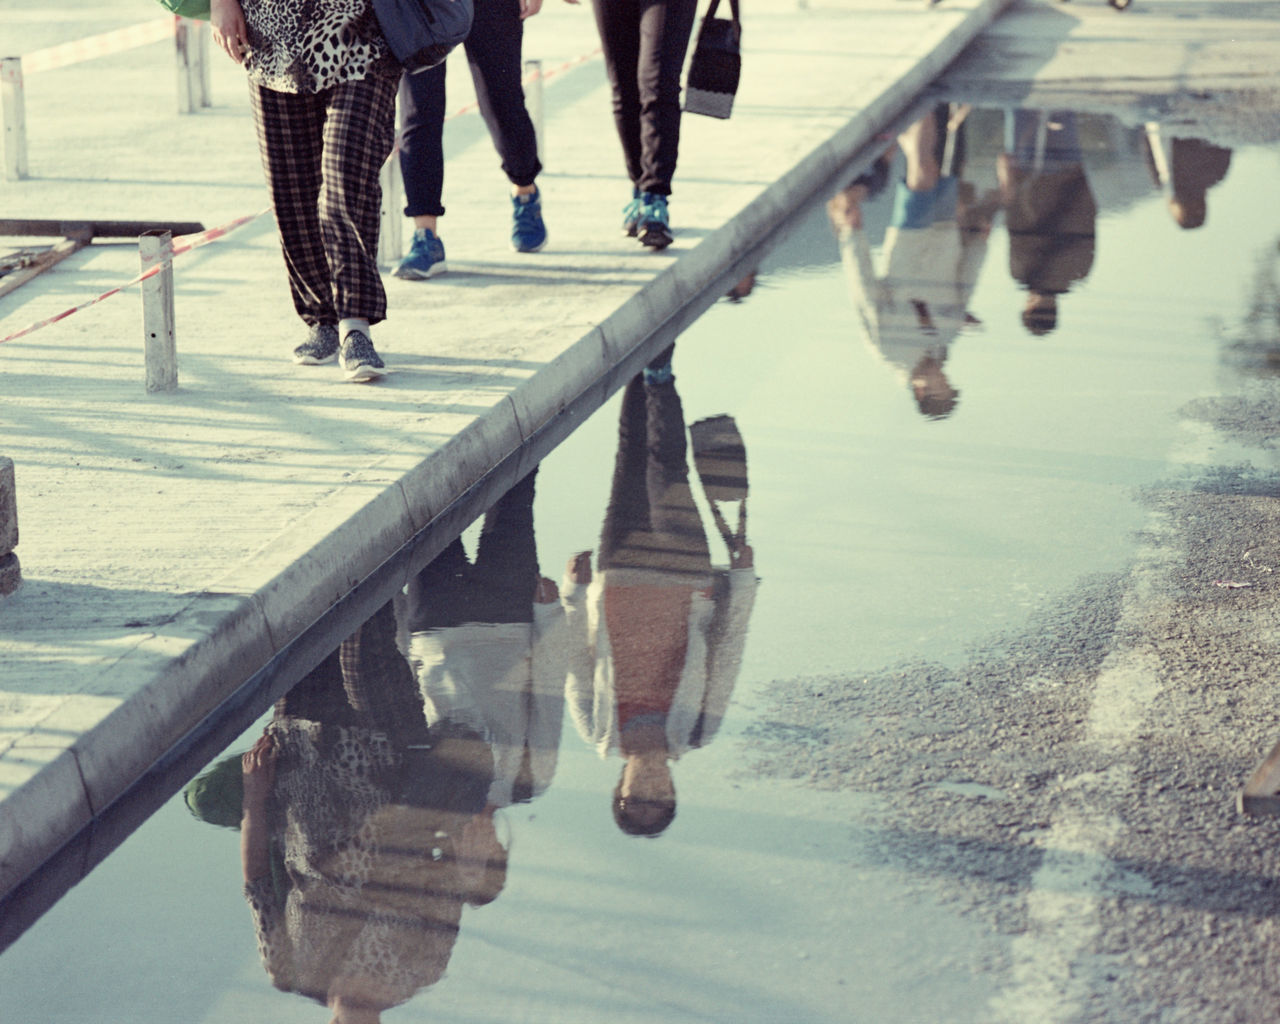 Low Section Of People With Reflection On Water